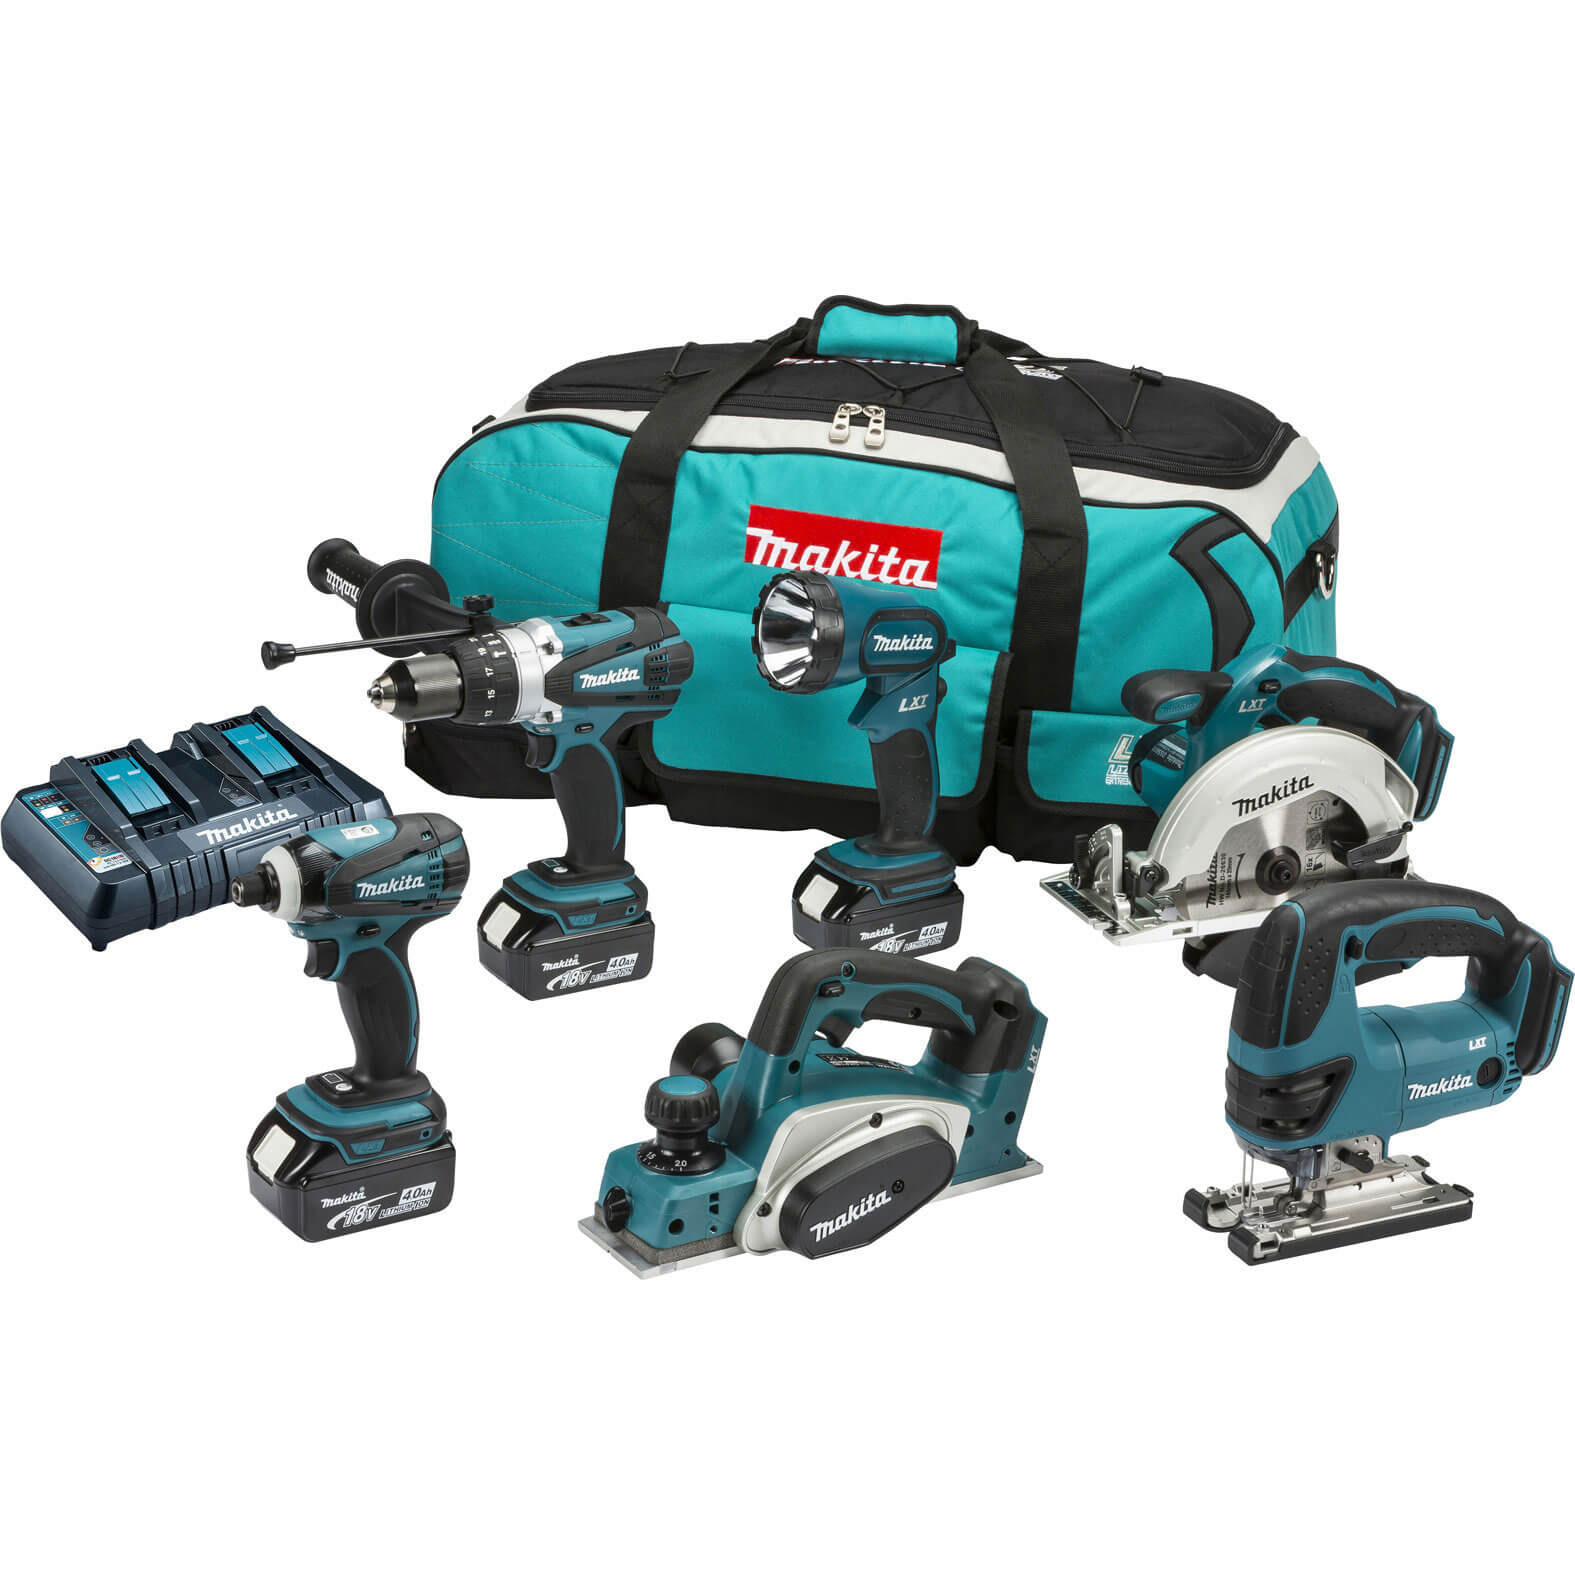 Image of Makita DLX6012PM 18v Cordless 6 Piece Power Tool Kit with 3 Lithium Ion Batteries 4ah